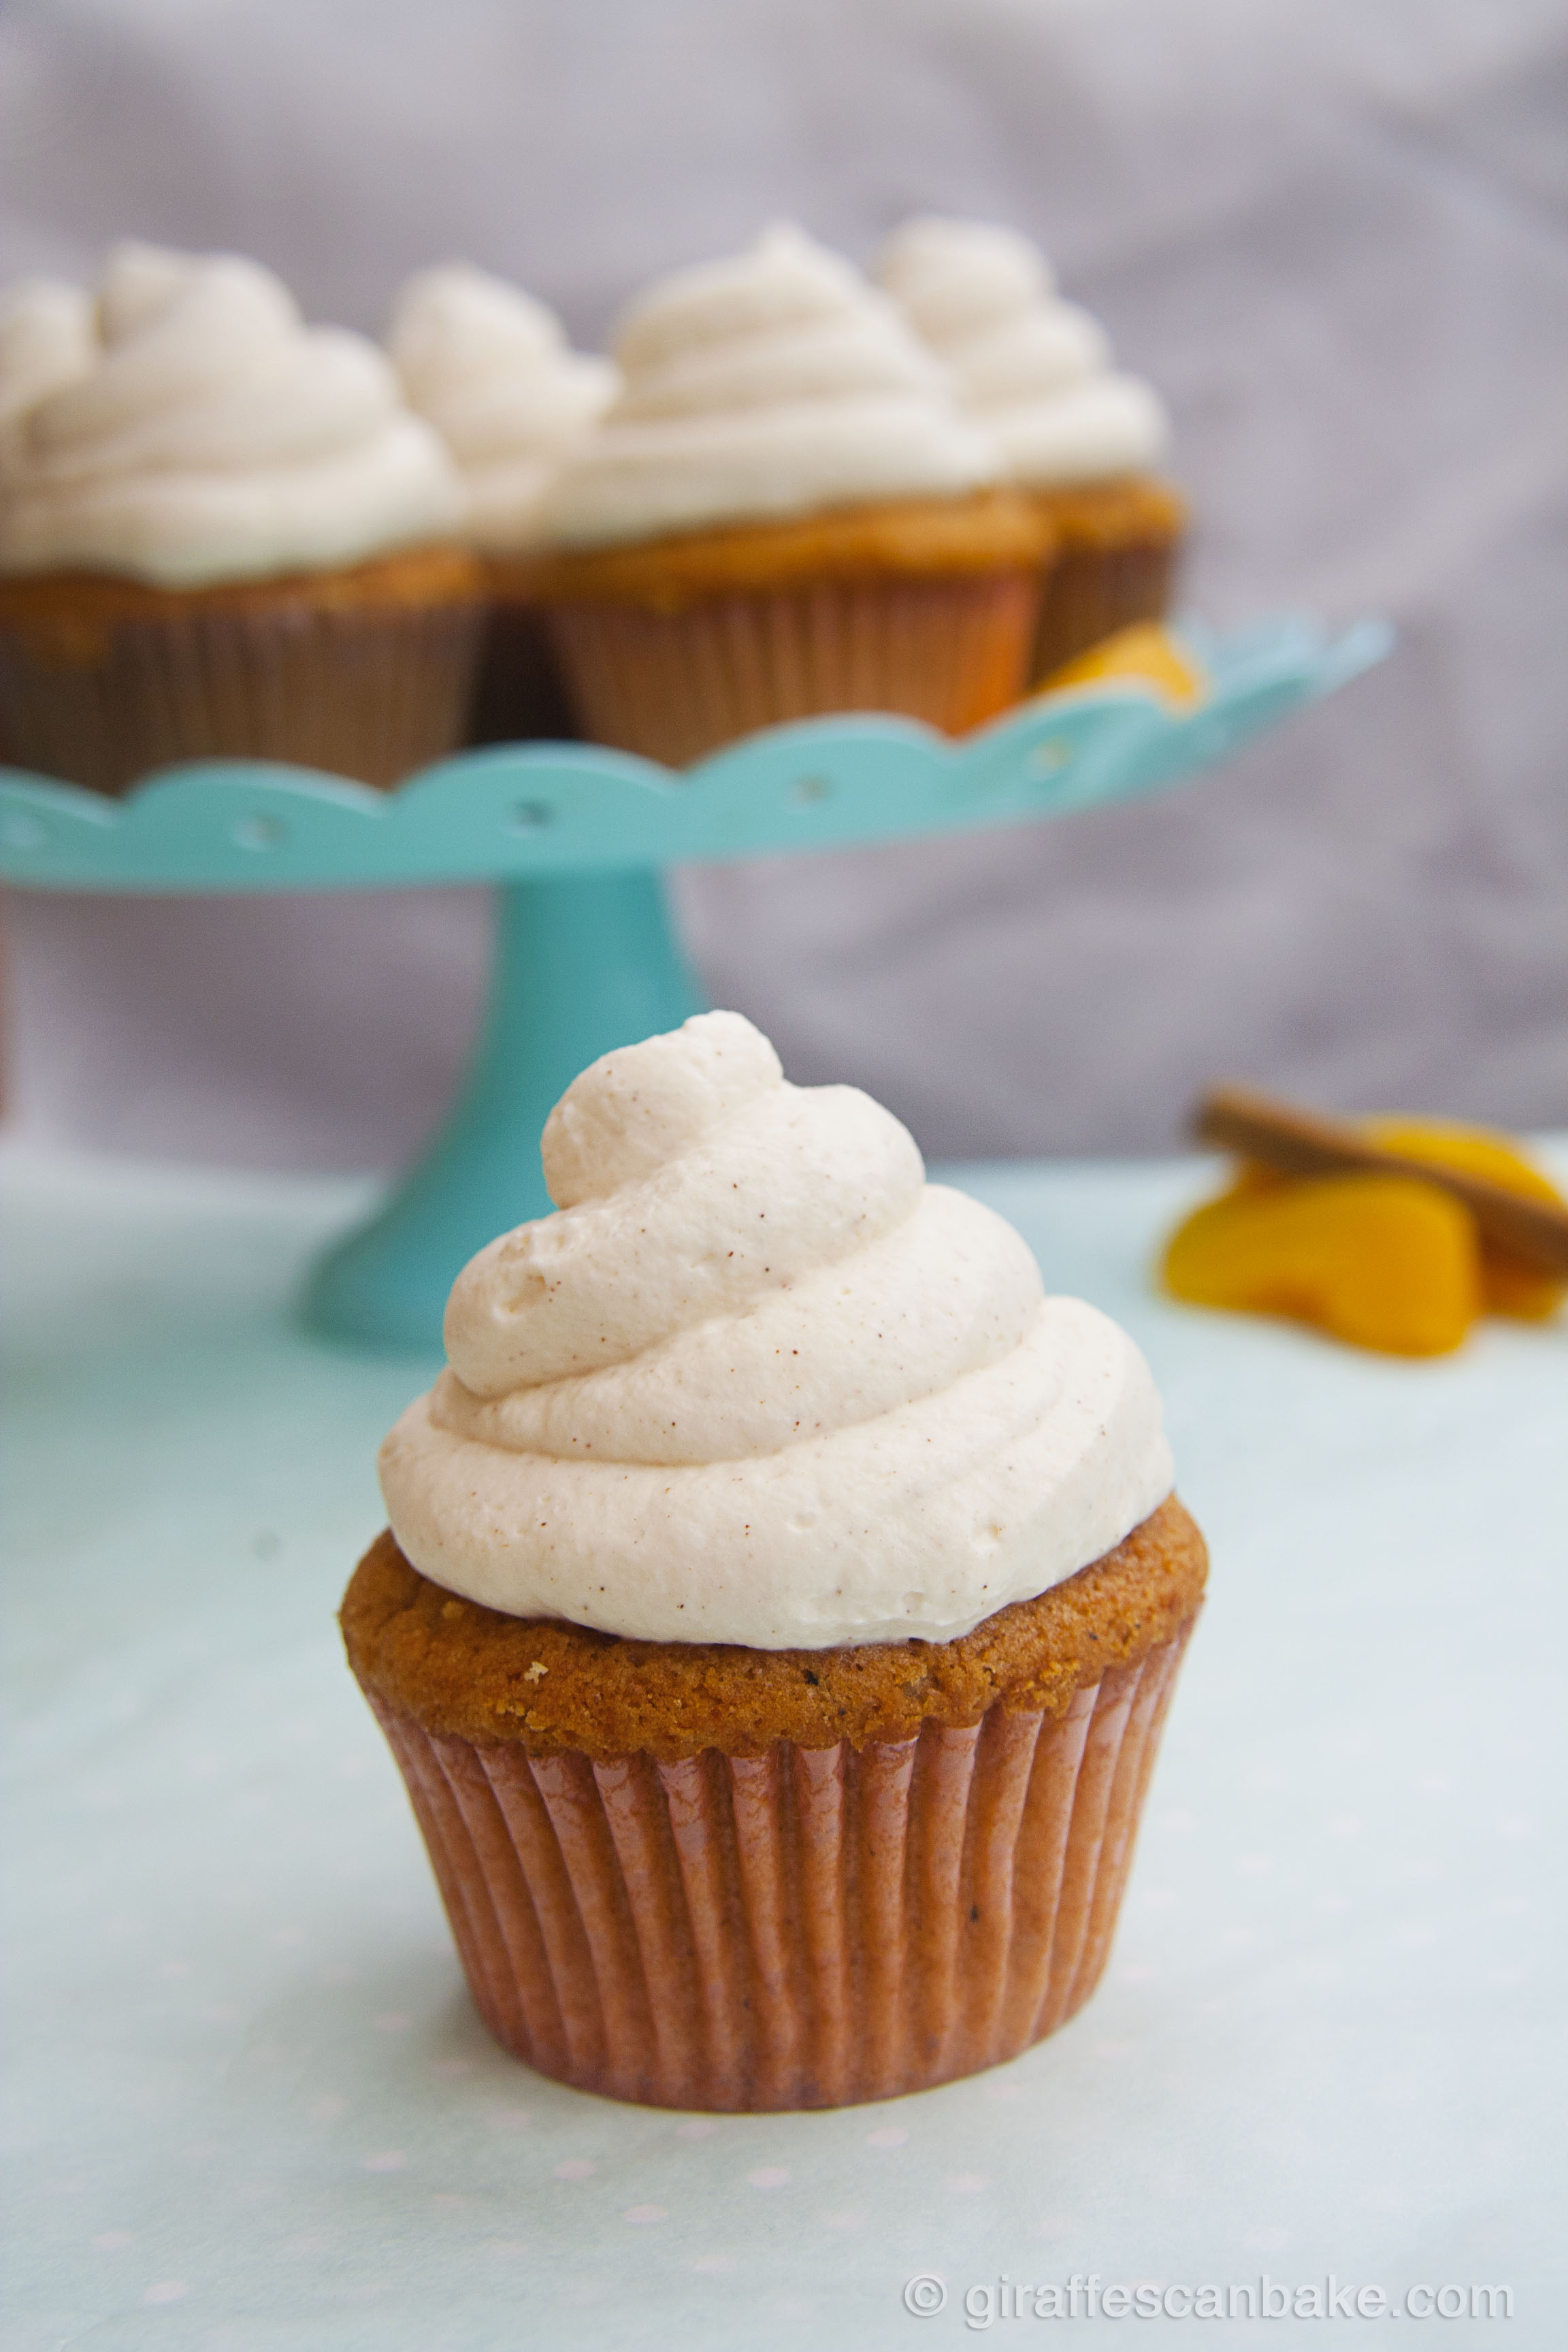 Peach Cupcakes with Cinnamon Frosting by Giraffes Can Bake - Moist ...